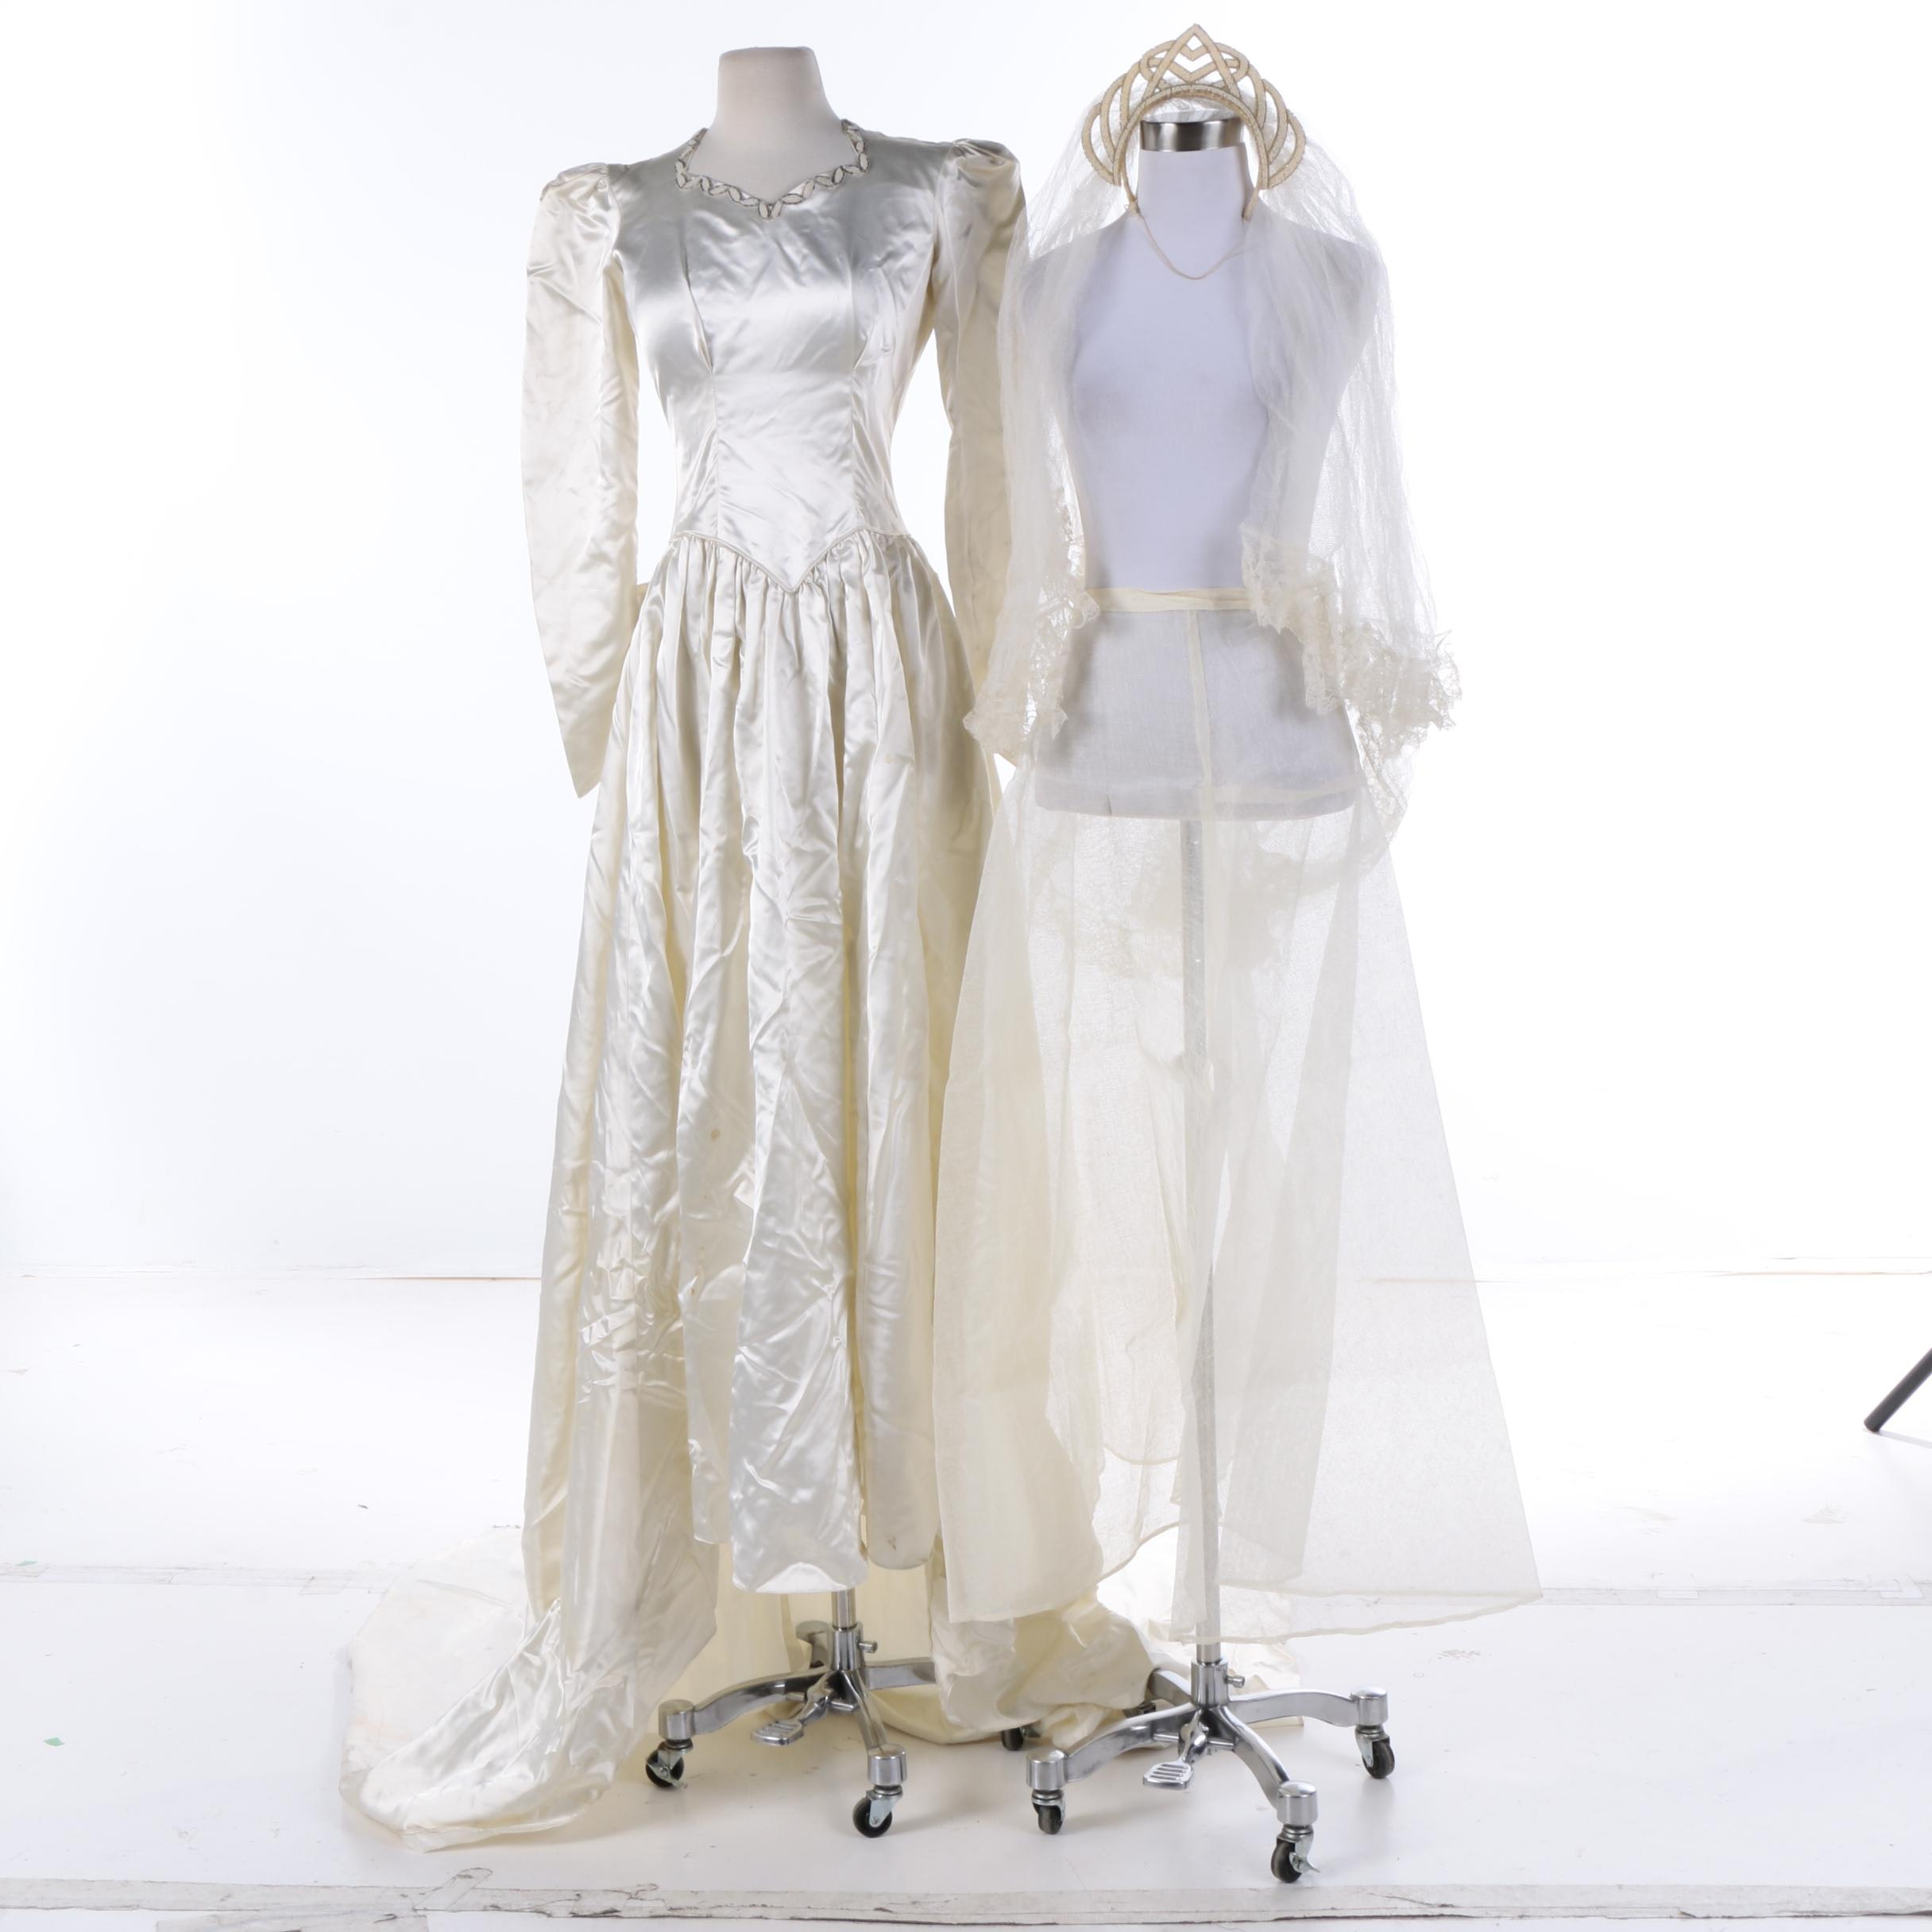 Circa 1940s Maurer Wedding Dress with Crinoline and Art Deco Style Beaded Tiara